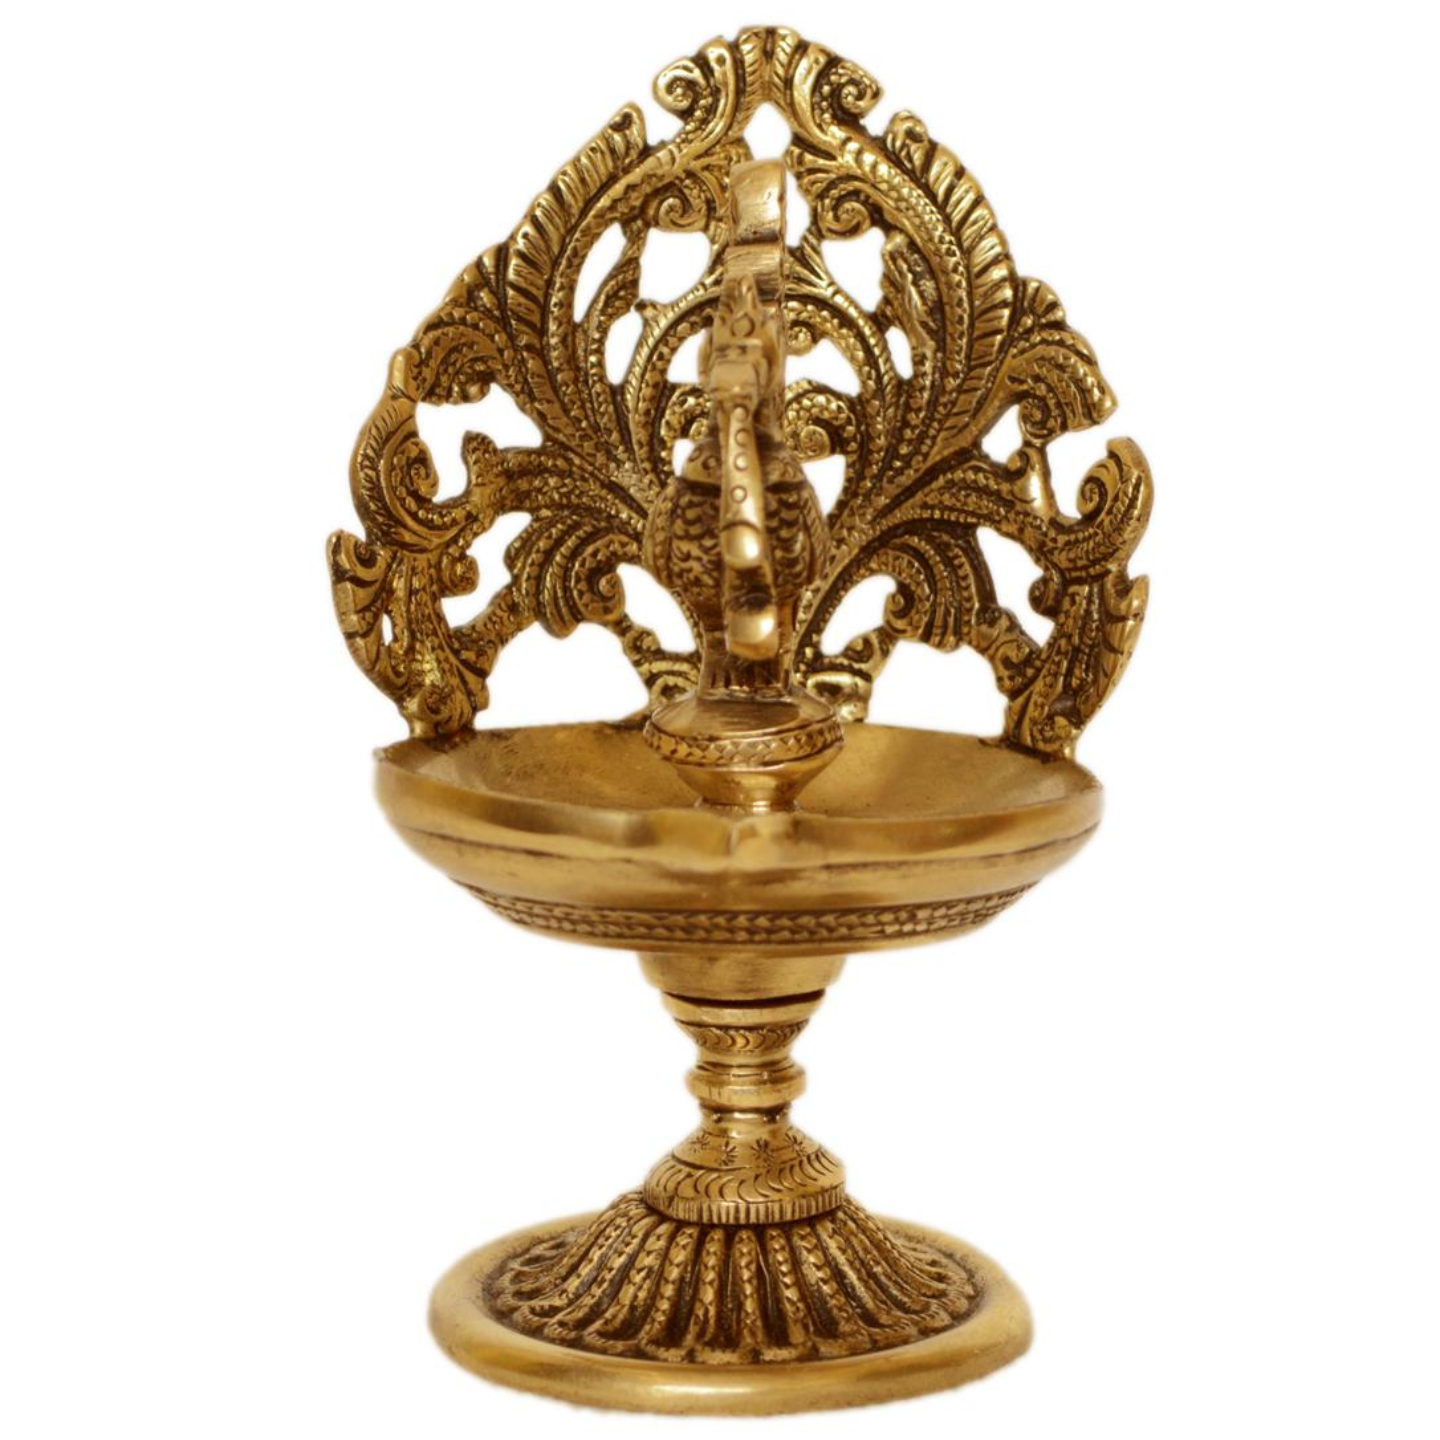 Brass Made Table Diya with Peacock Figure - 6 Inch (BS1196 A)